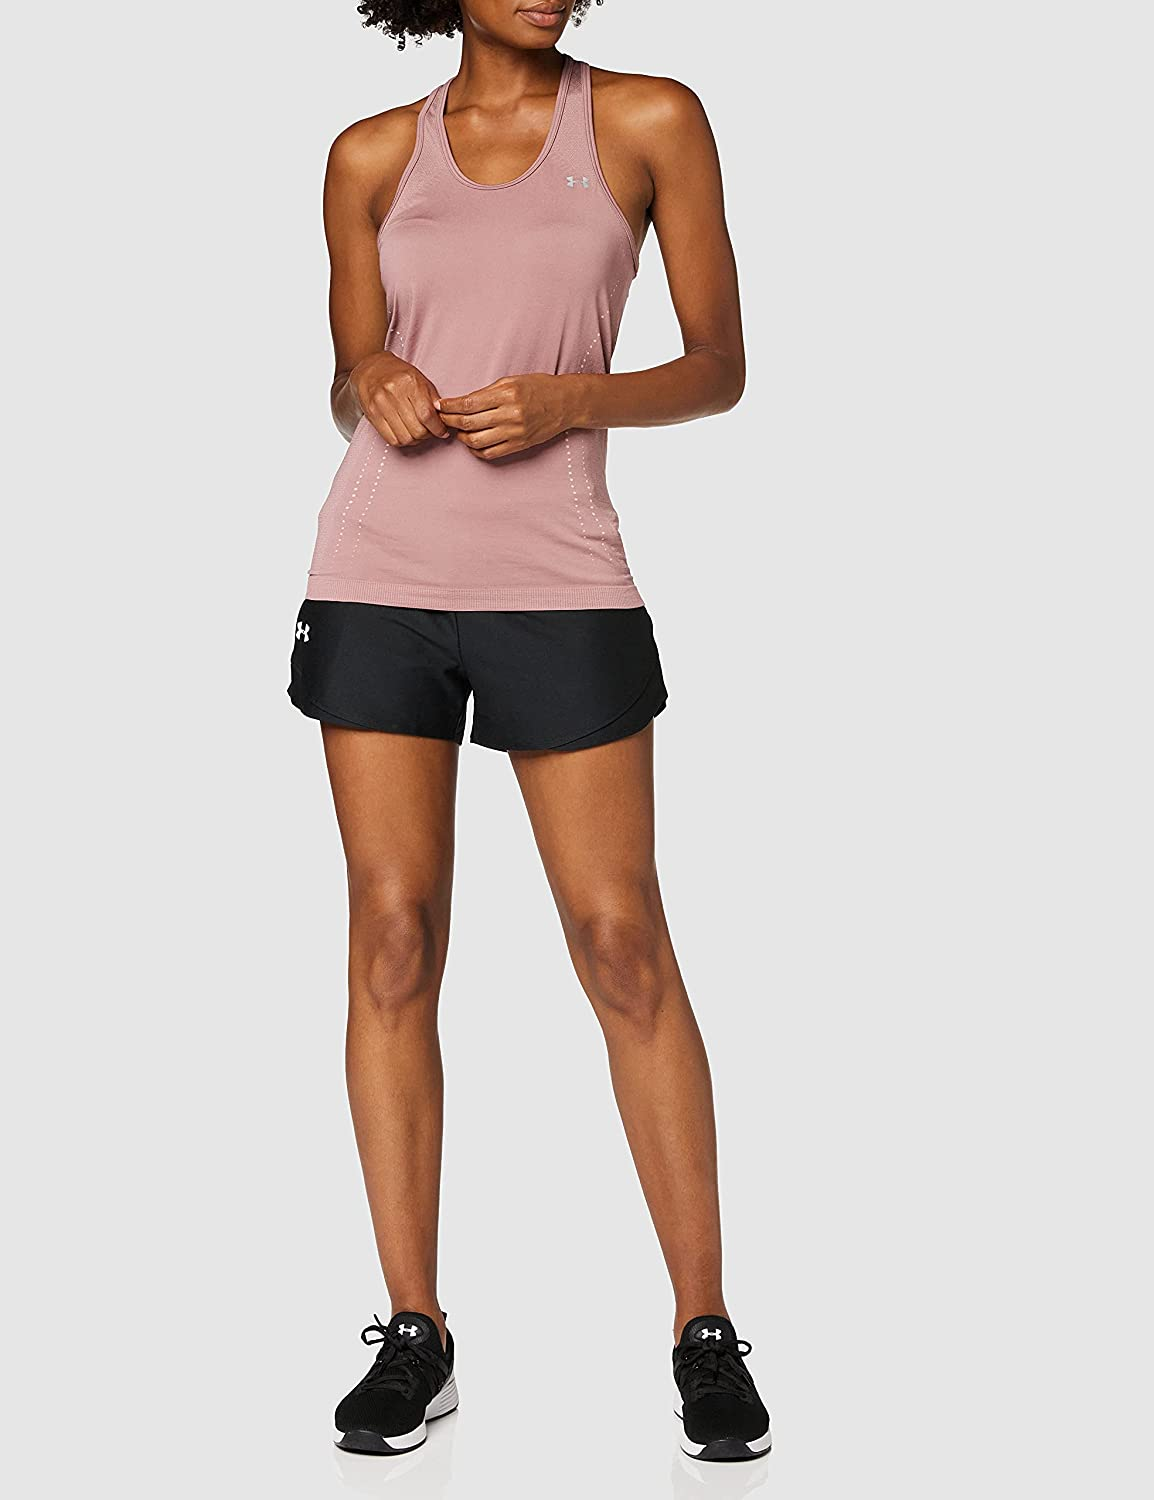 Under Armour Women's Play Up 3.0 Shorts : Sports & Outdoors